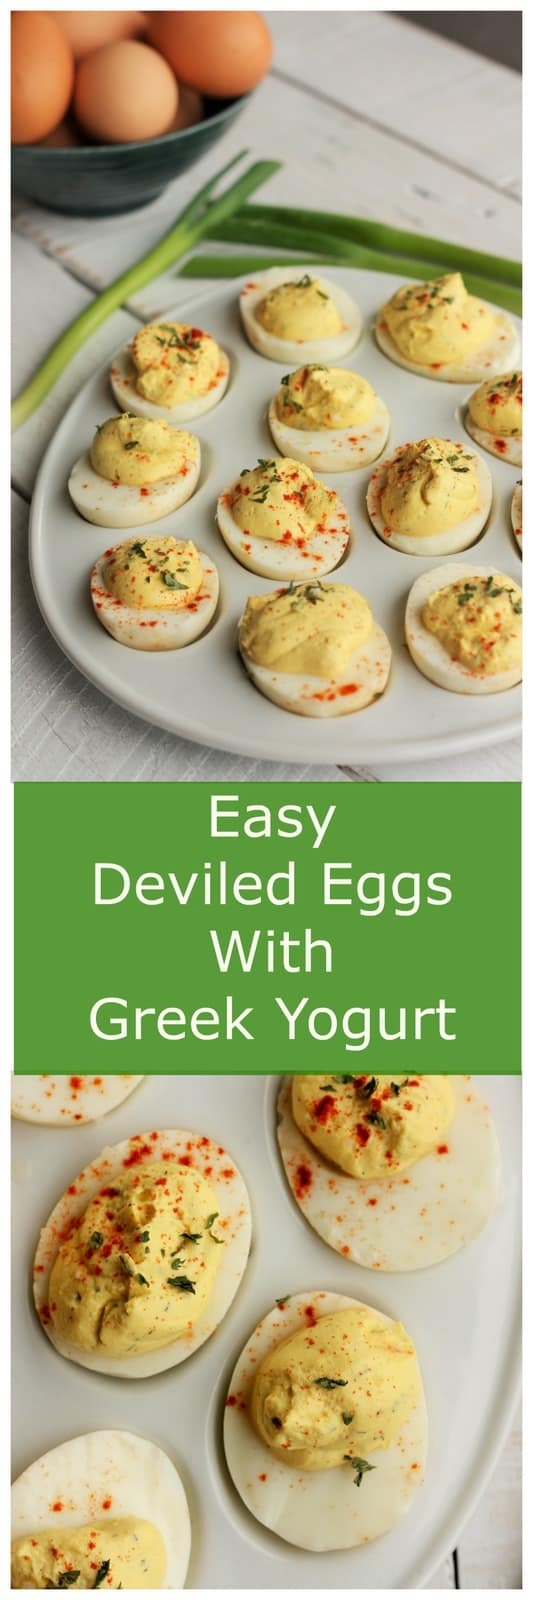 Deviled eggs are a popular addition to any party or get together. These Easy Deviled Eggs With Greek Yogurt are a lighter take on a classic recipe. Perfect for potlucks, dinner parties, Easter, and basically any event where people have taste buds and like to eat!